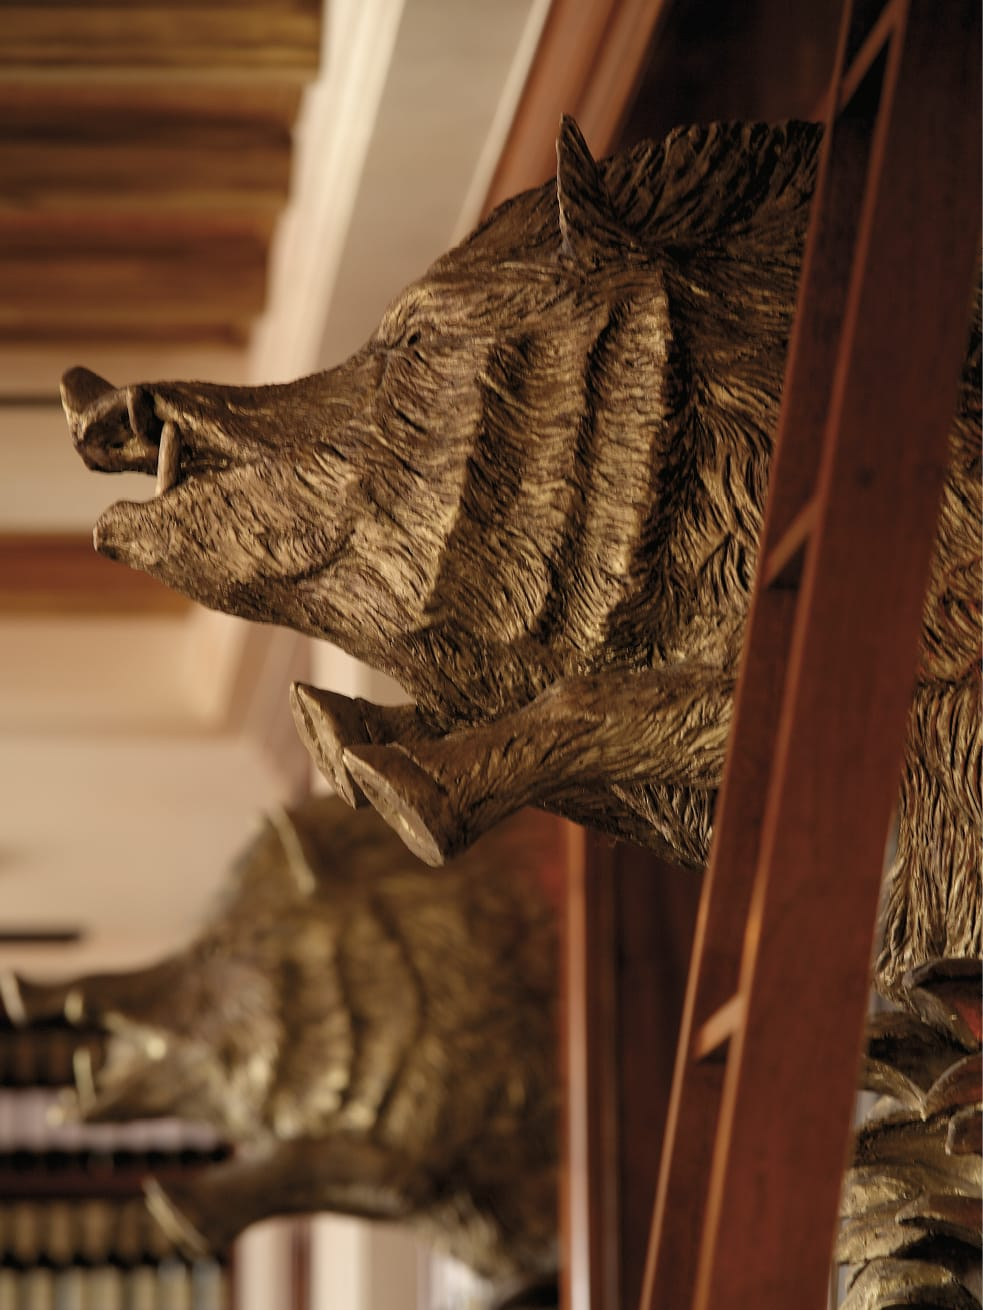 A sculpture of a boar hanging from the wall